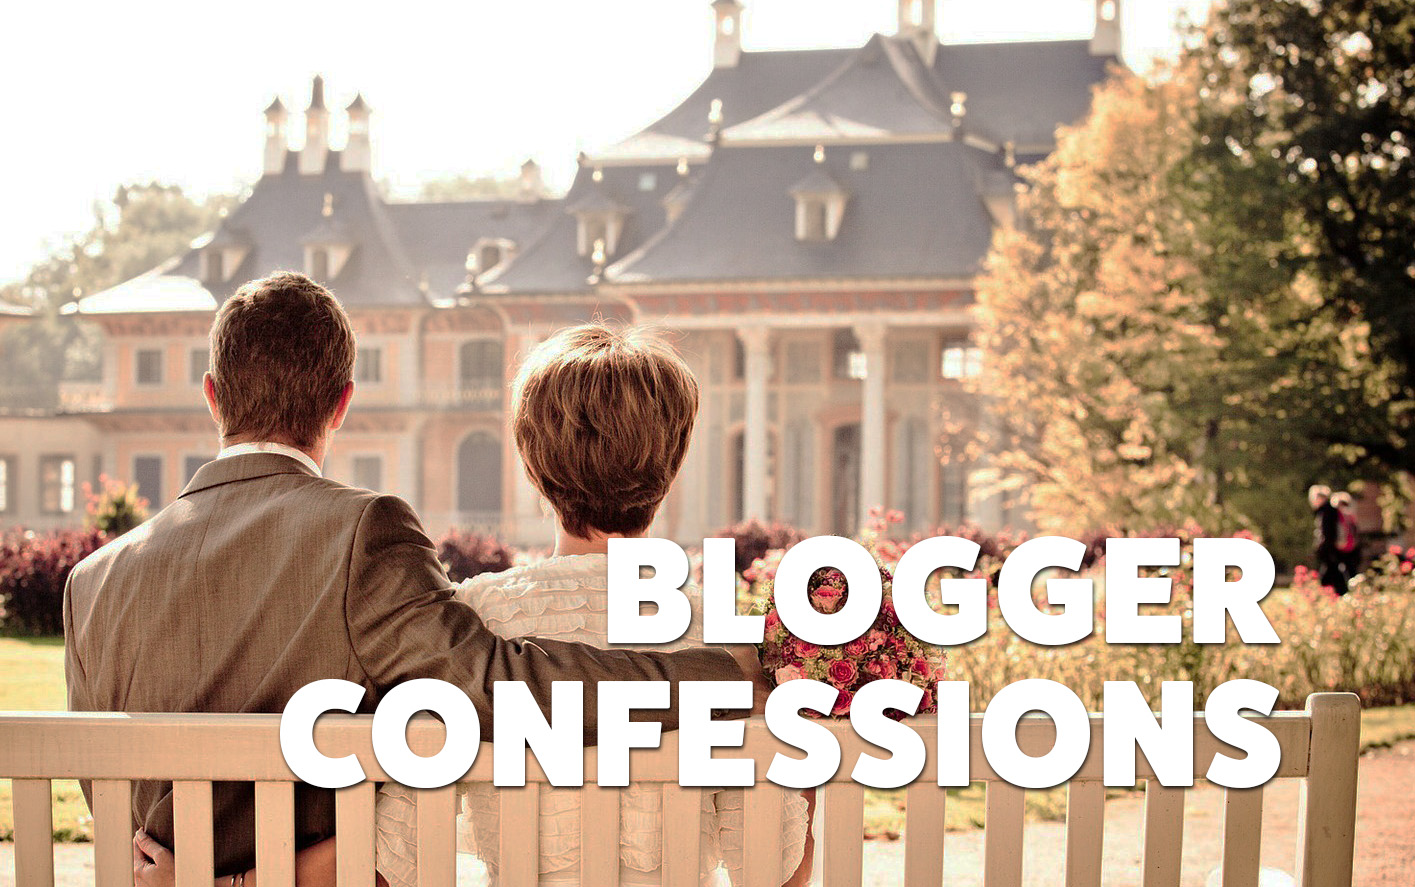 Blogger Confessions #34: Billy and Akaisha Kaderli from Retire Early Lifestyle